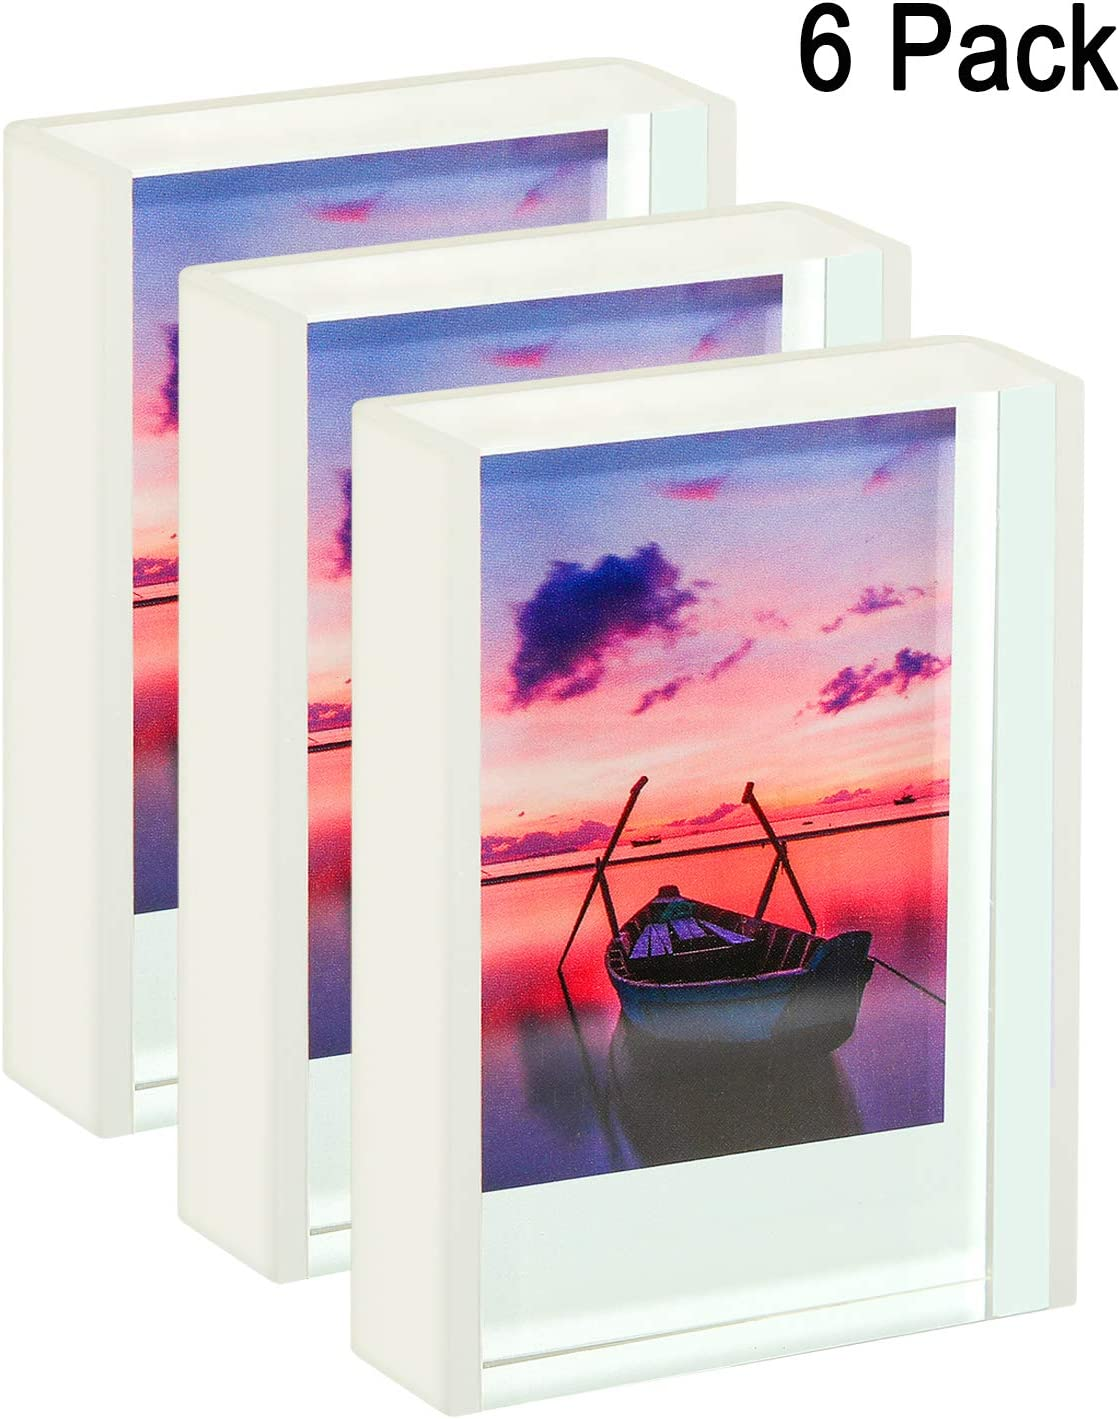 WINKINE Instax Mini Frames 2x3, 6 Pack Polaroid Frames Clear Cute Picture Frames for Tabletop & Desktop, Freestanding Sliding Photo Display for Fujifilm & Polaroid Film